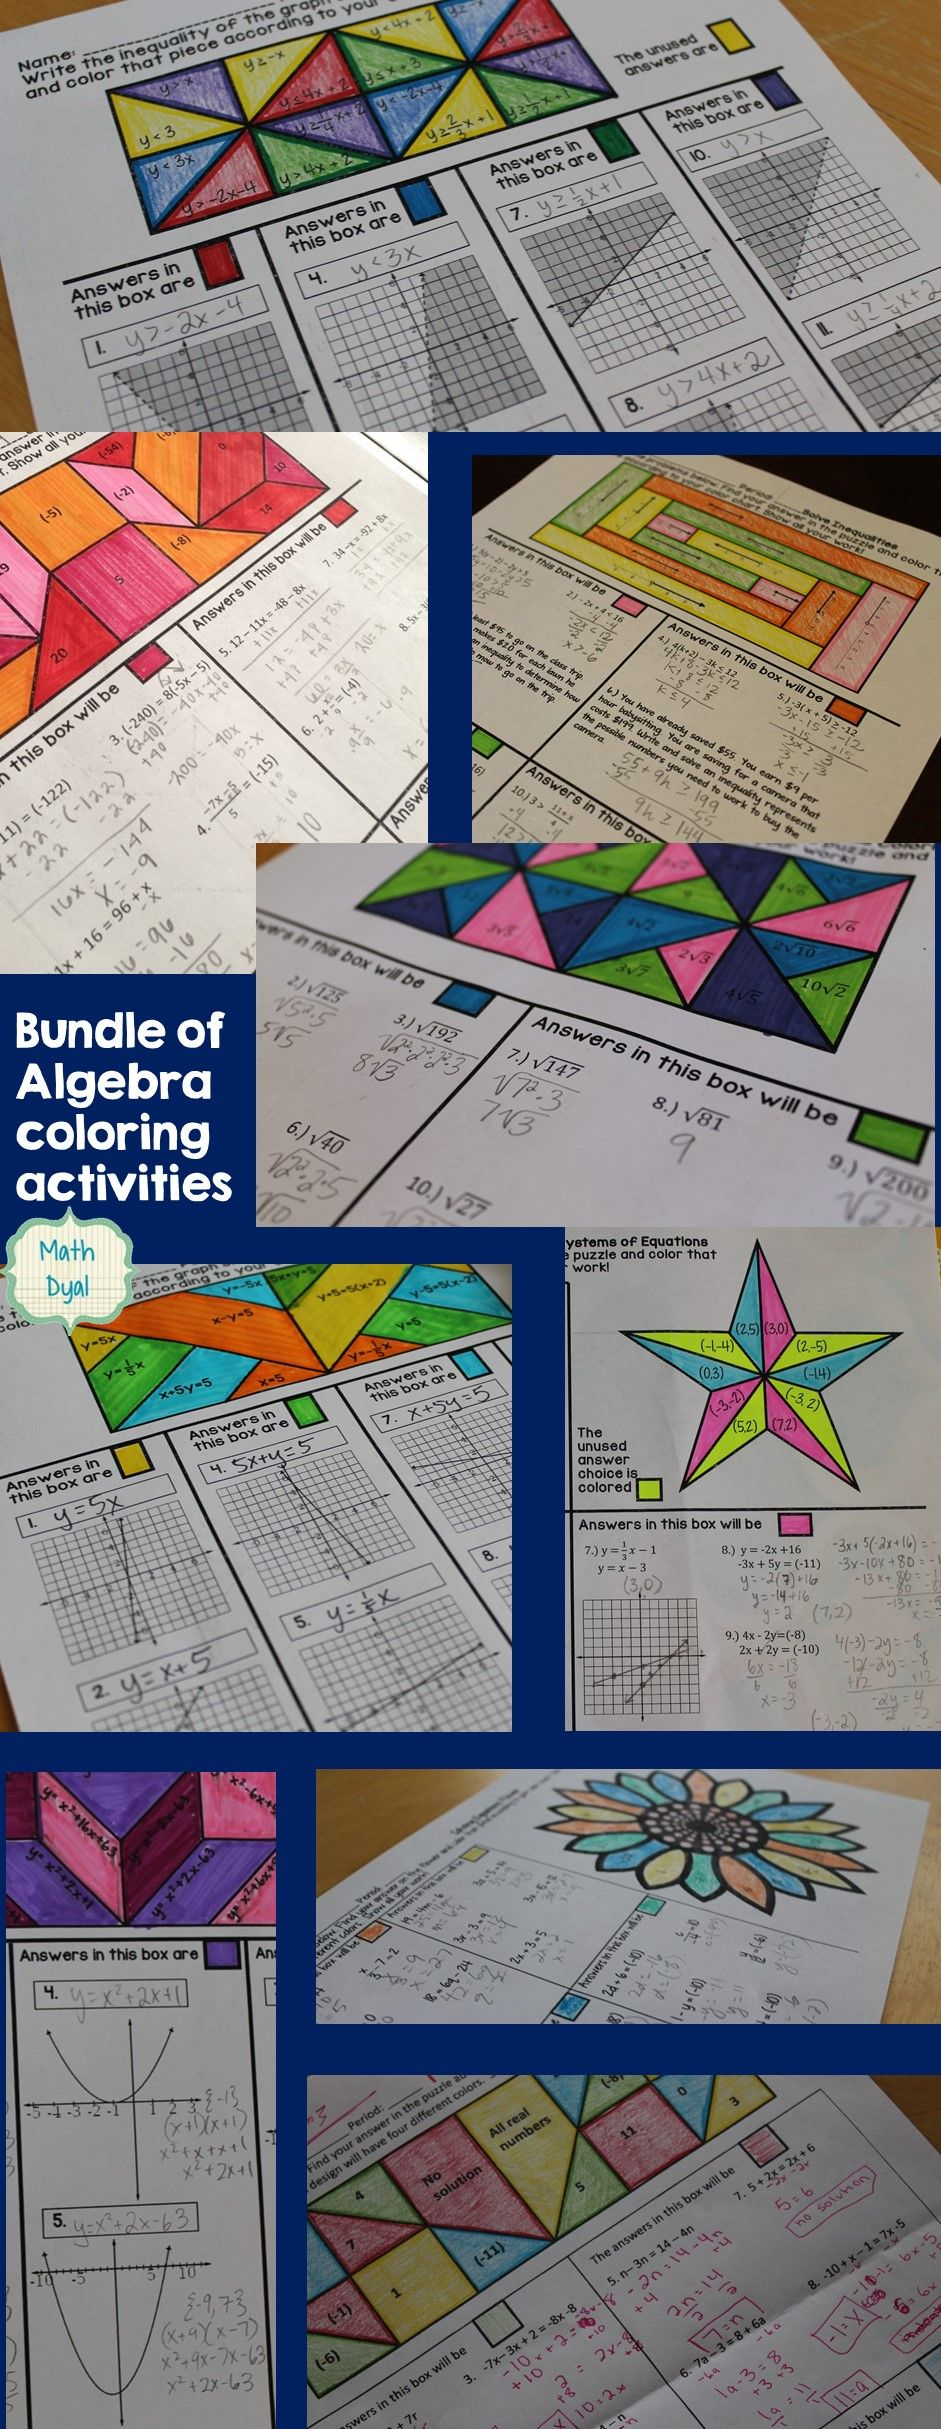 Algebra Coloring Activities Bundle Math classroom, Math